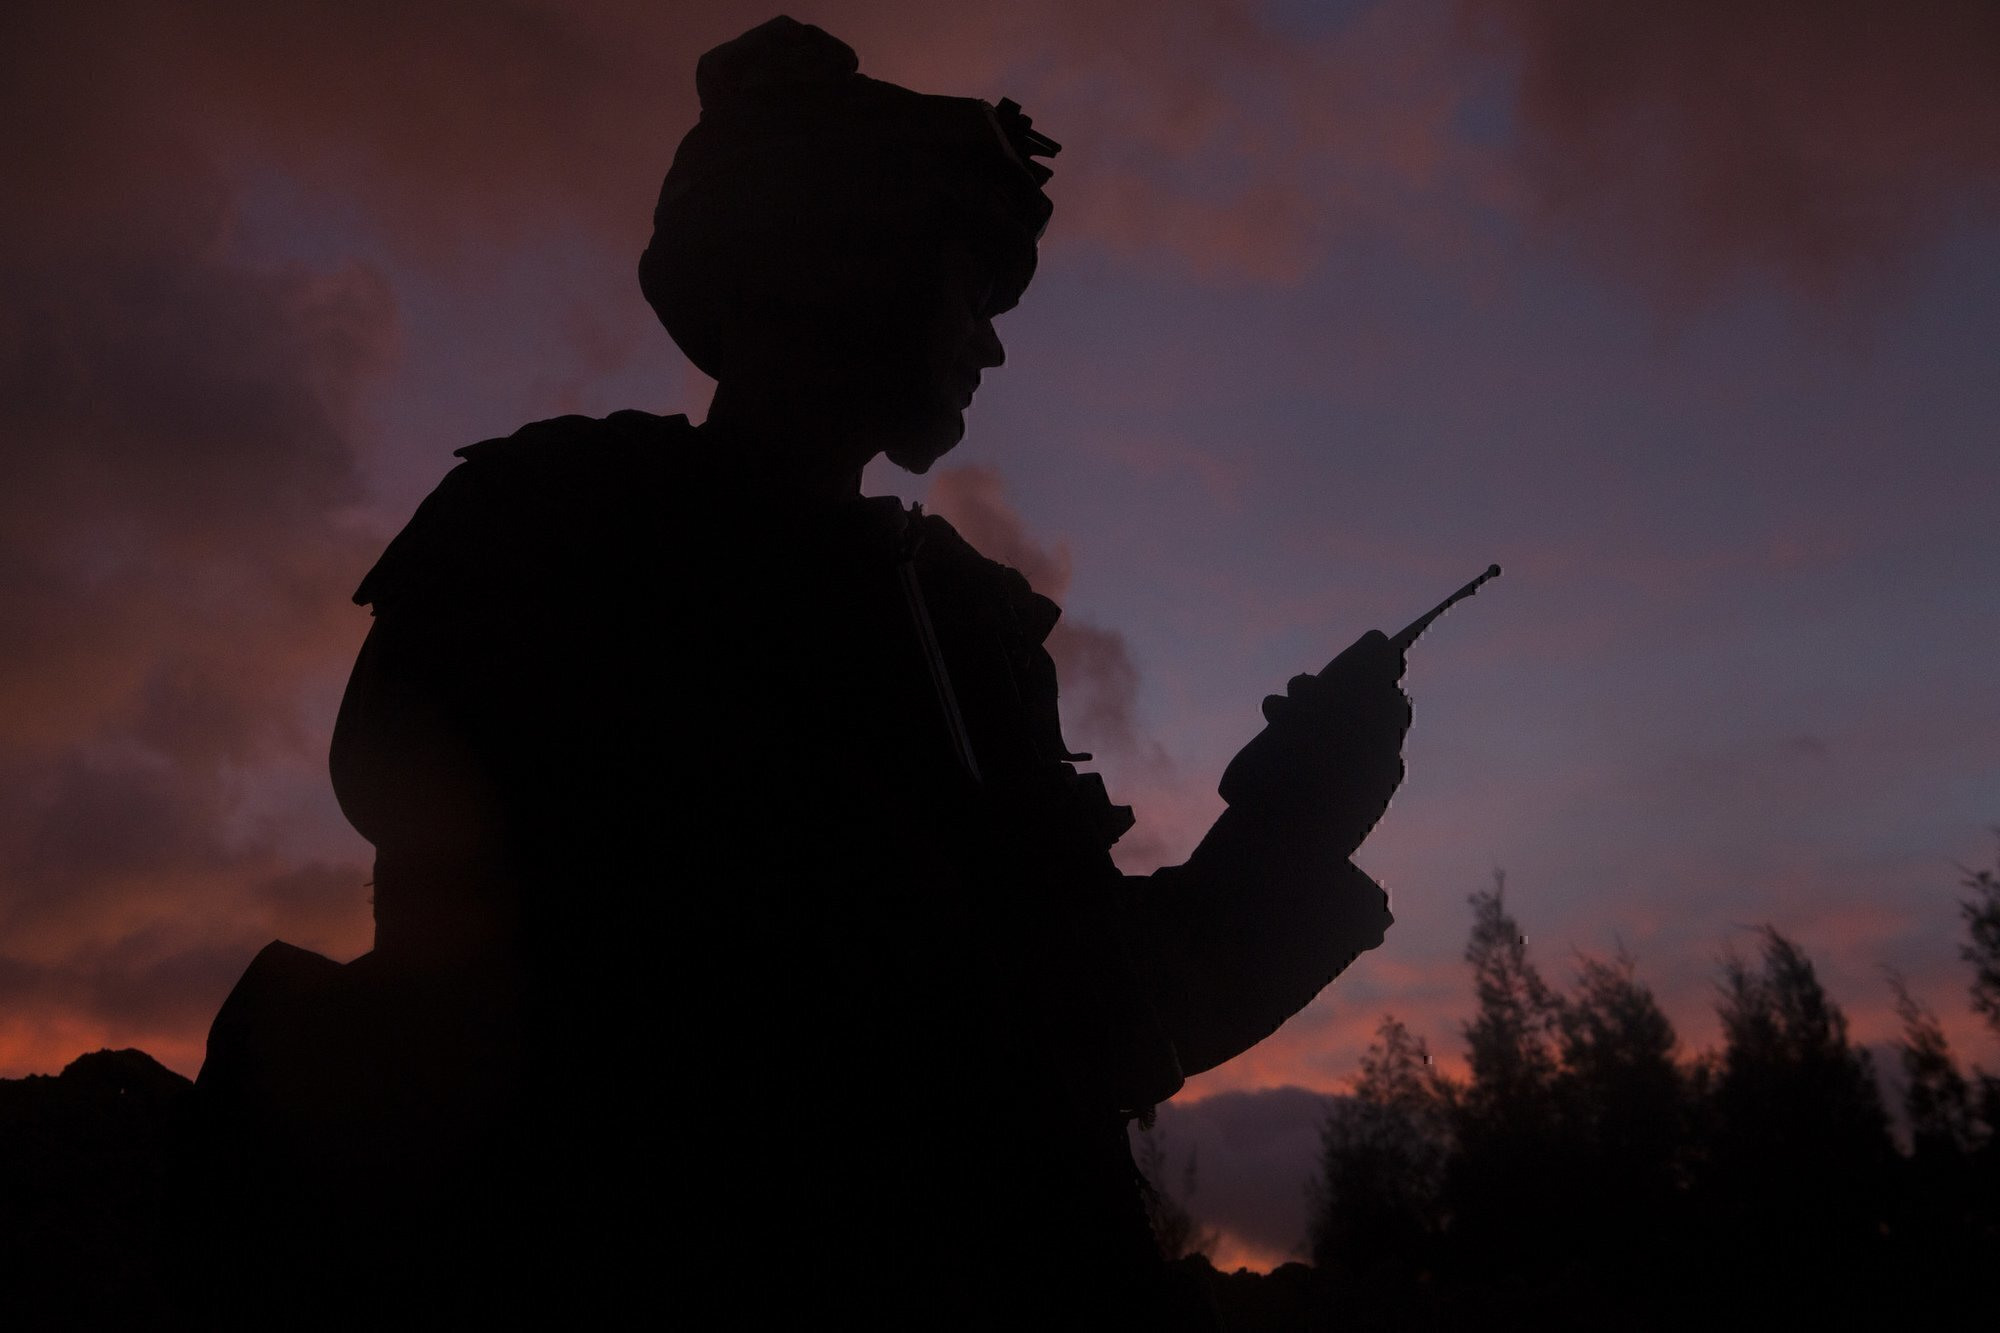 a soldier speaks into a radio, a common practice in IT Jobs